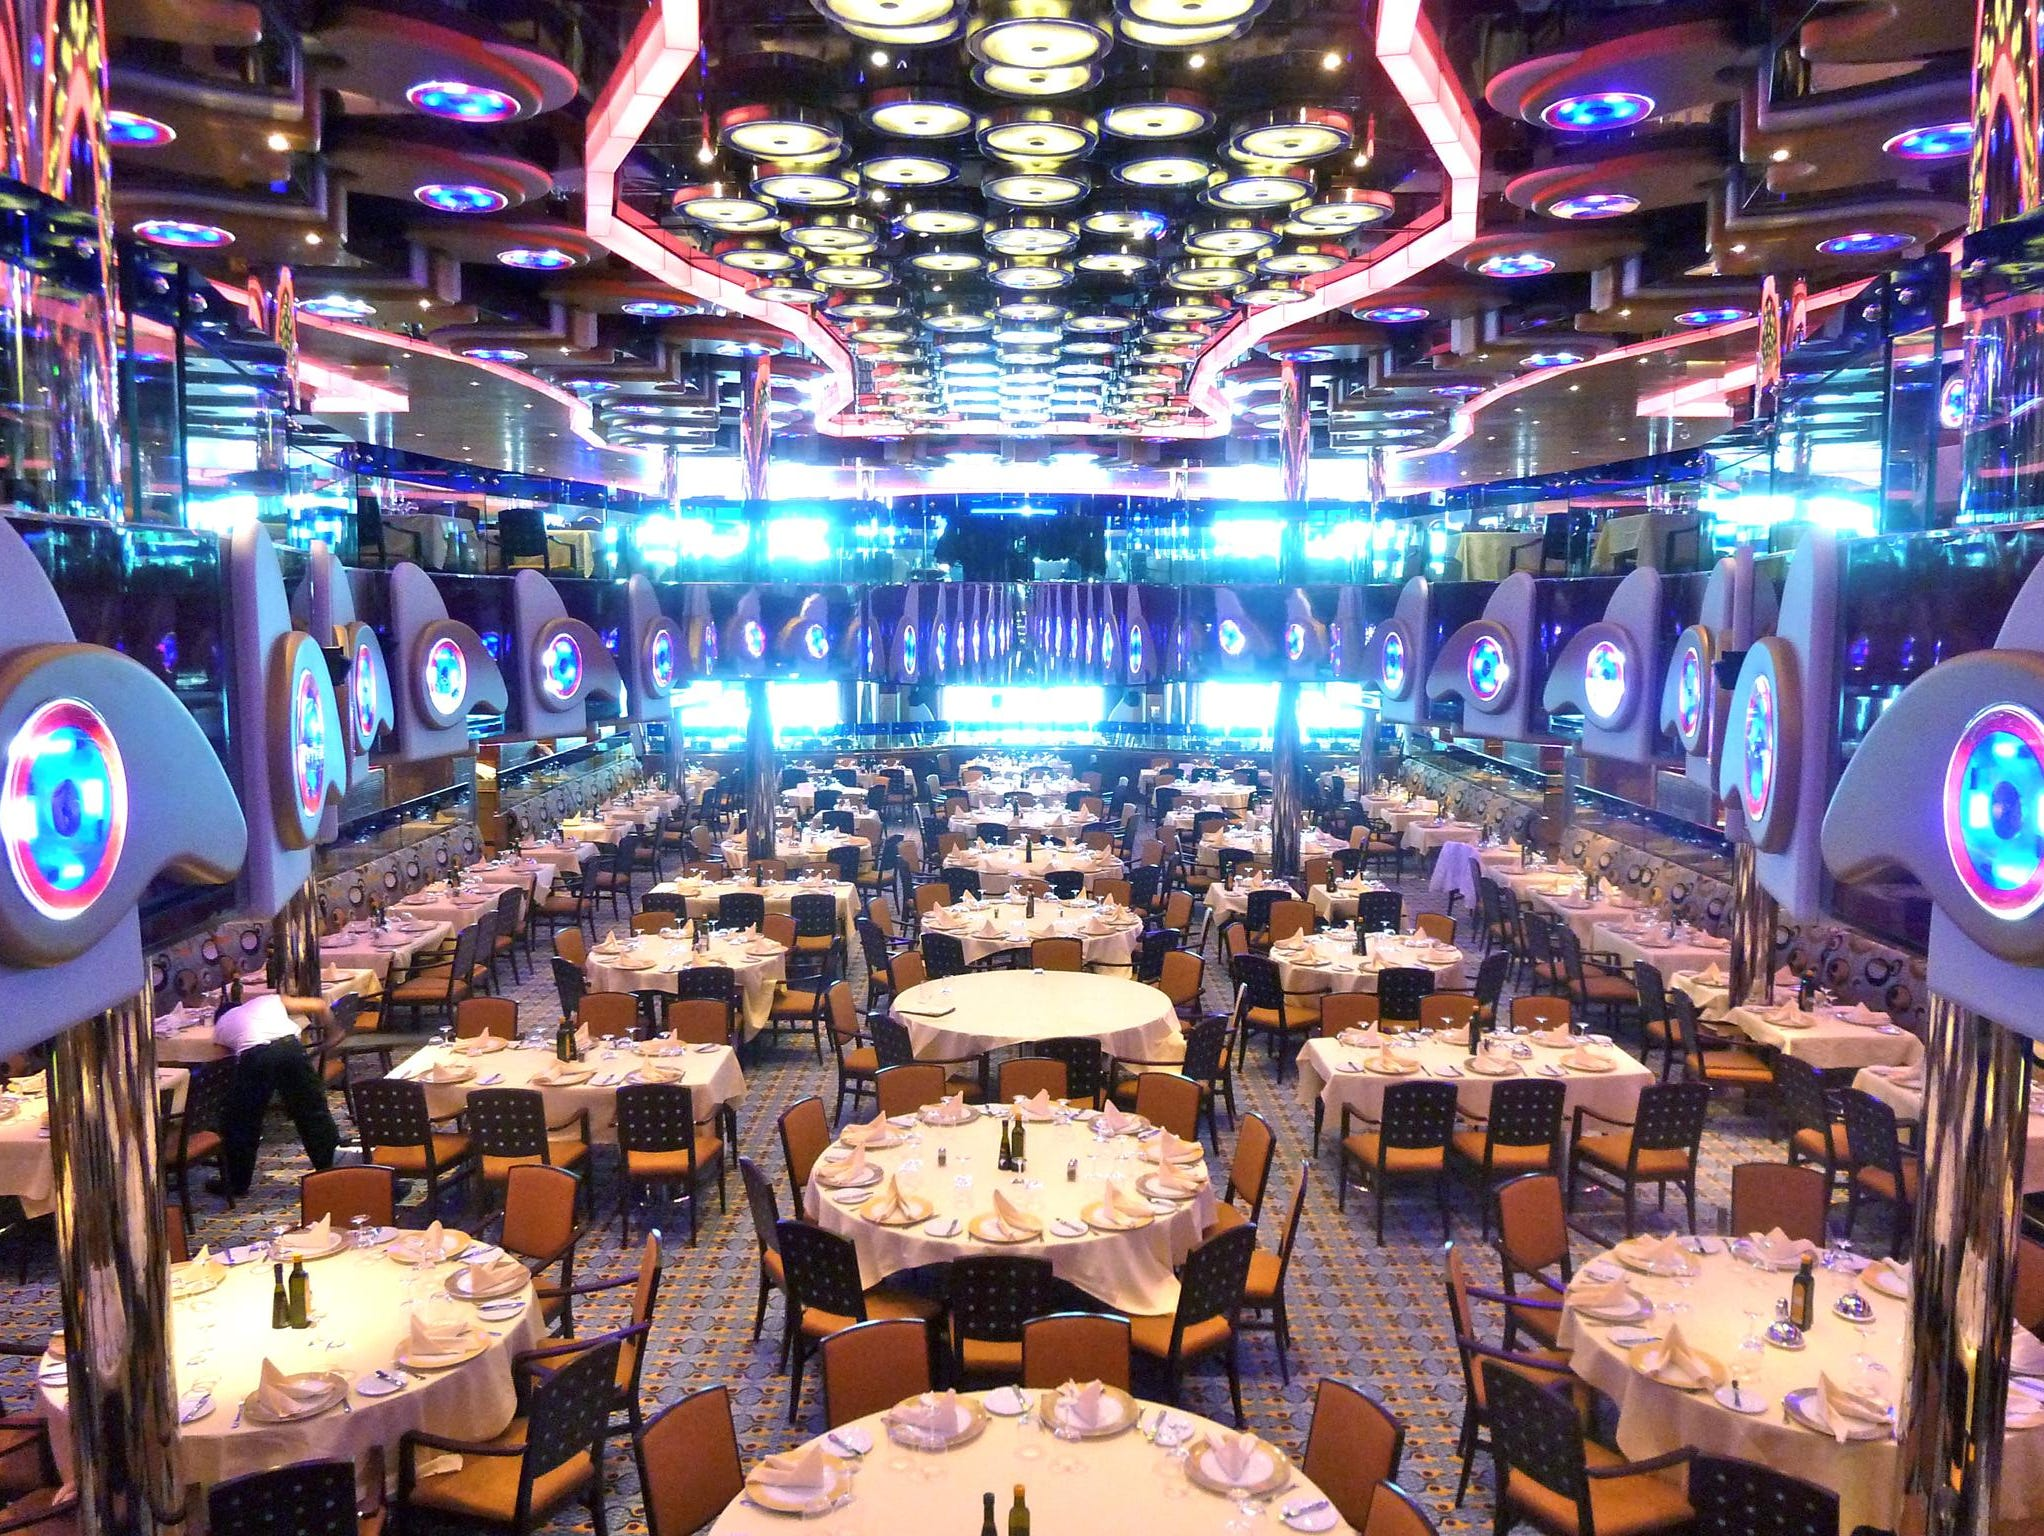 Concluding Azalea Deck, the Restaurant Albatros is the Costa Deliziosa's main dining venue. The upper level is a balcony with a large central opening that is bridged by a musician's stage.